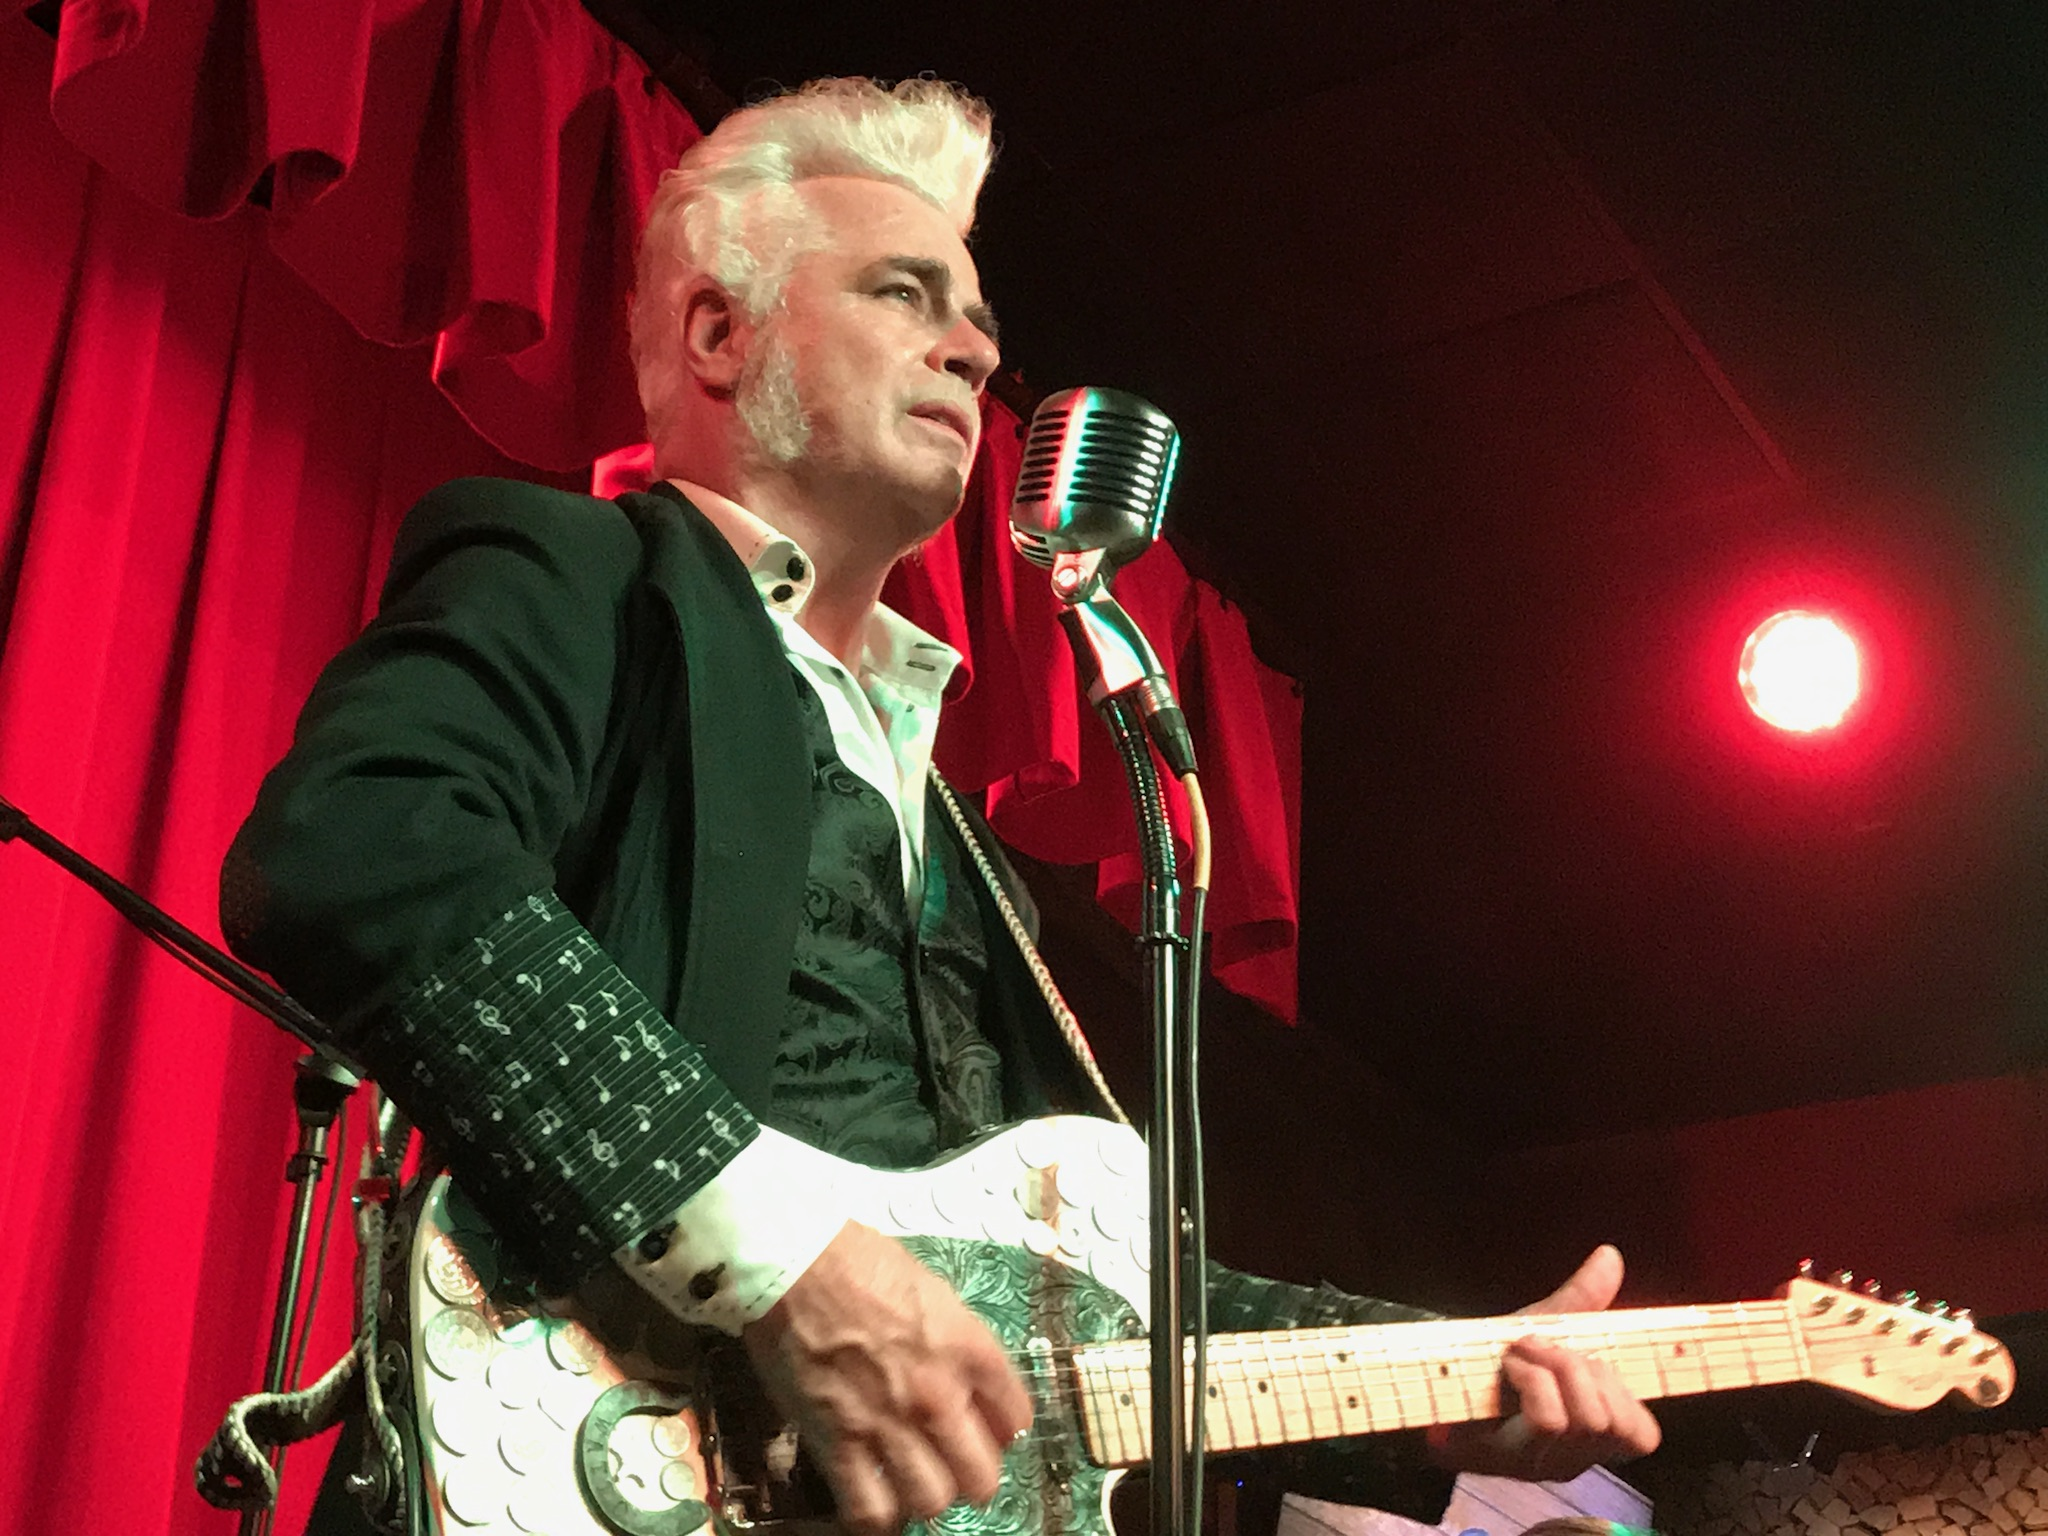 Dale Watson at Willie's Locally Known.  Photo taken by and the property of FourWalls.